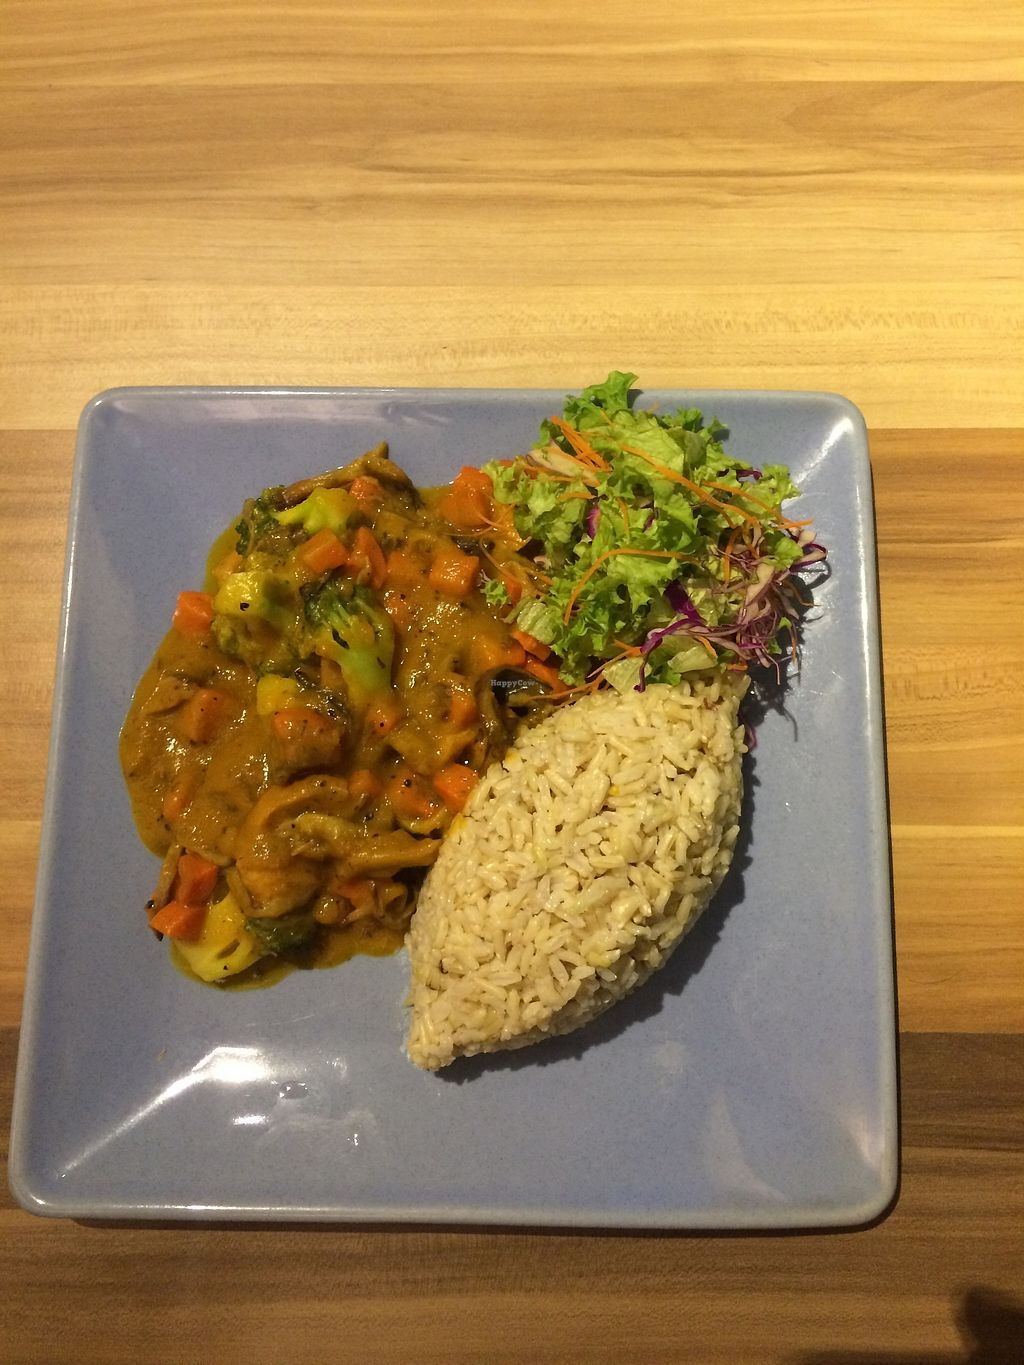 """Photo of Seeds Garden Bistro  by <a href=""""/members/profile/LaurenceMontreuil"""">LaurenceMontreuil</a> <br/>Japanese curry <br/> March 6, 2018  - <a href='/contact/abuse/image/68249/367257'>Report</a>"""